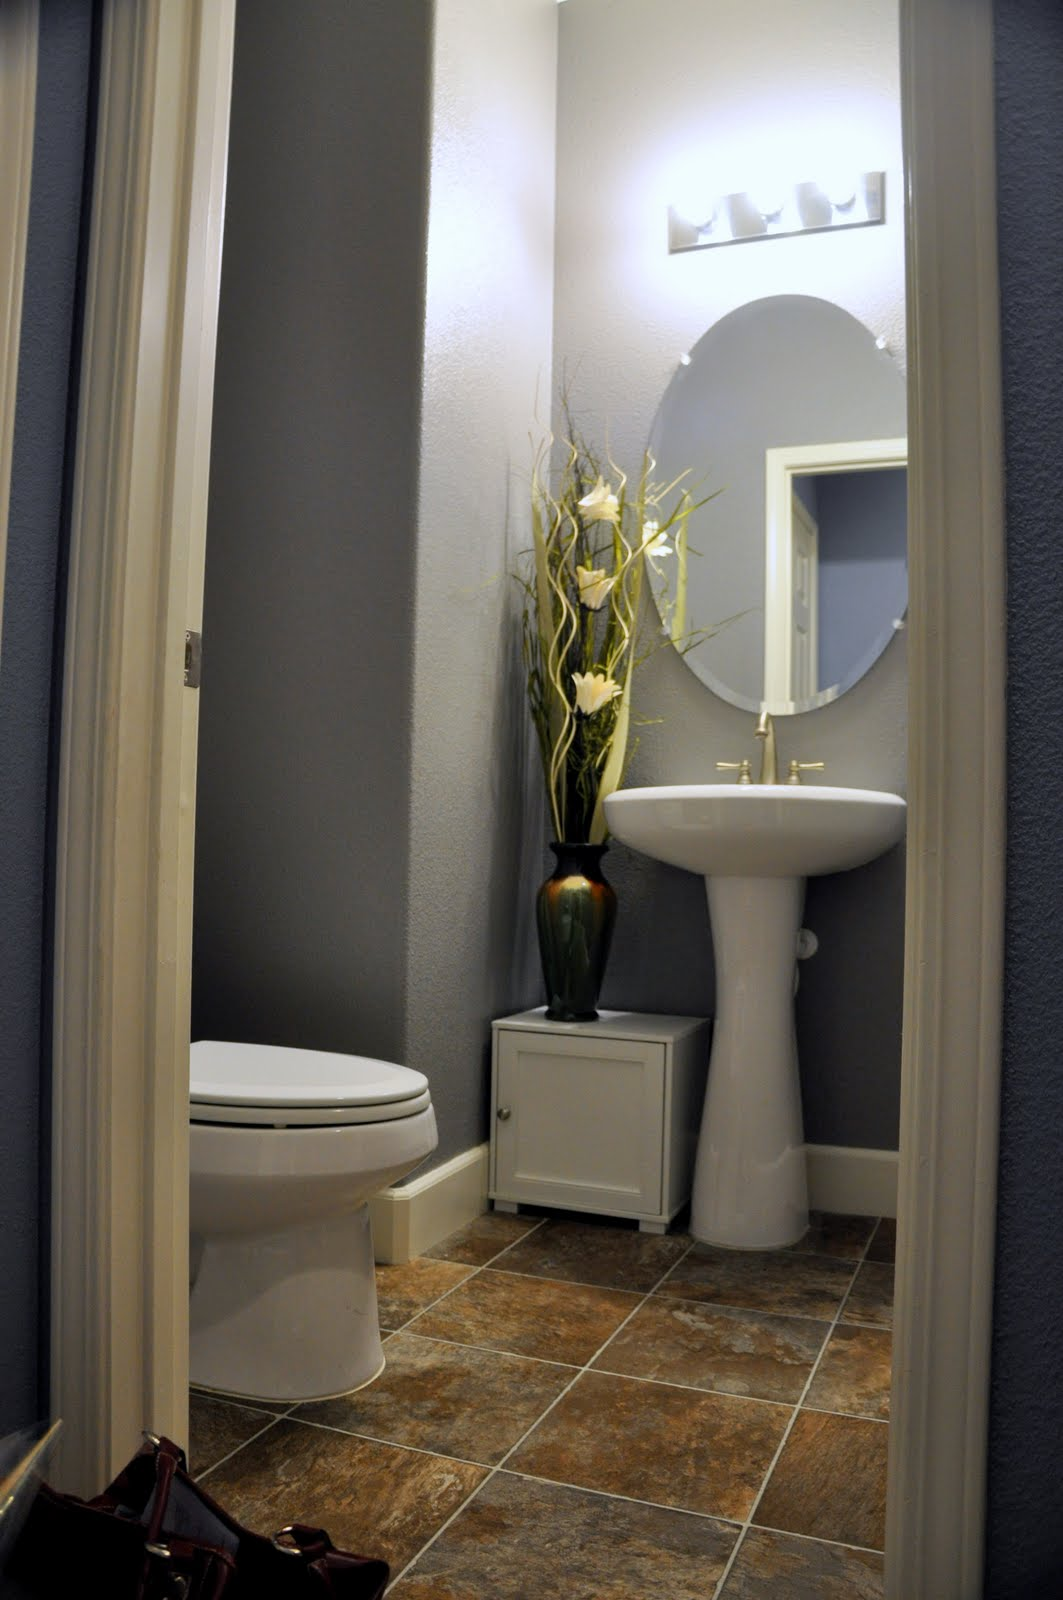 Sherwin williams pewter cast 2015 home design ideas for 9x11 bathroom ideas